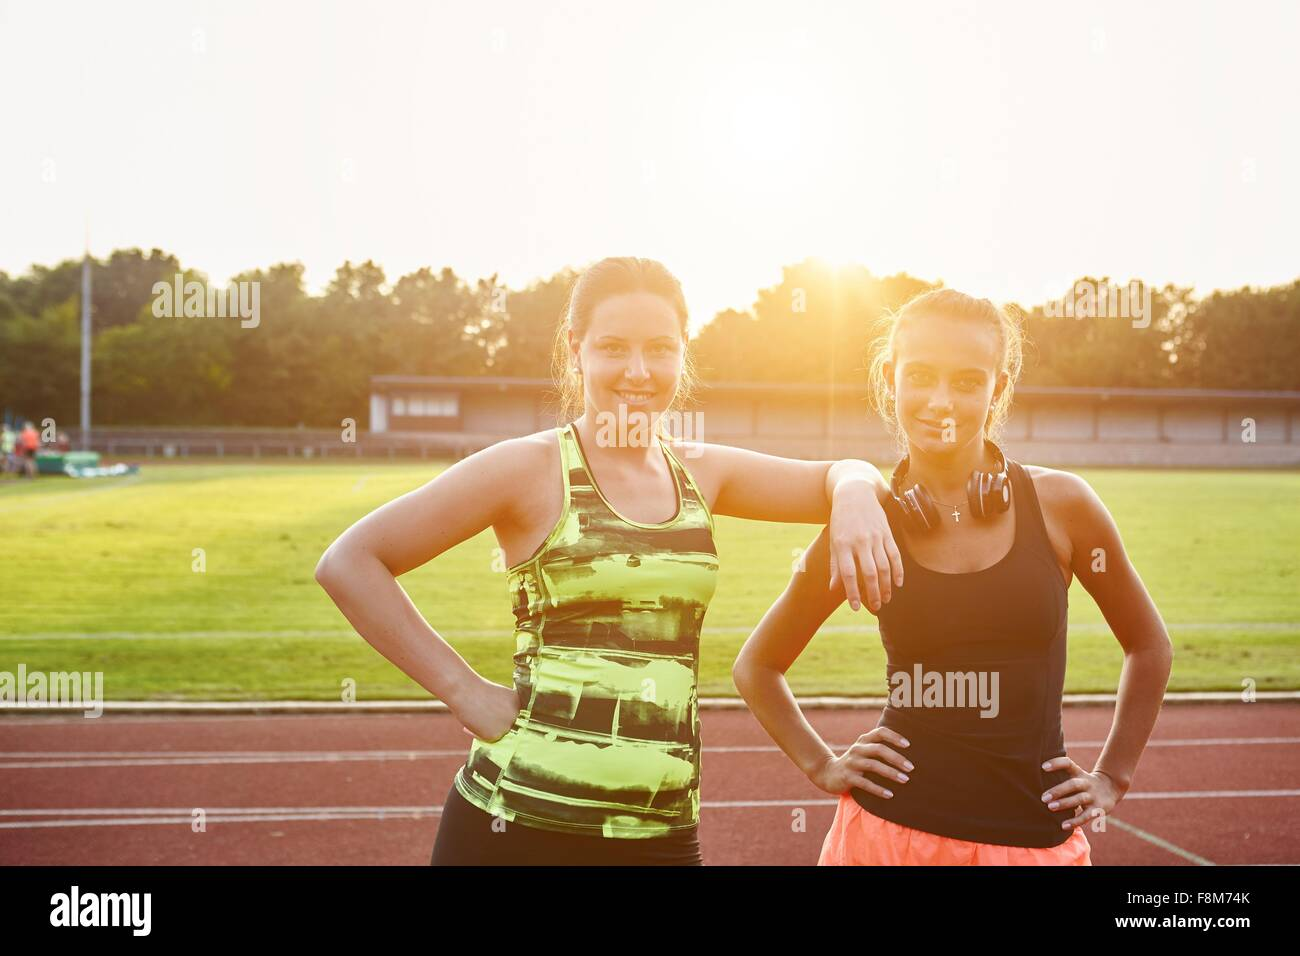 Portrait of two young female runners on race track - Stock Image